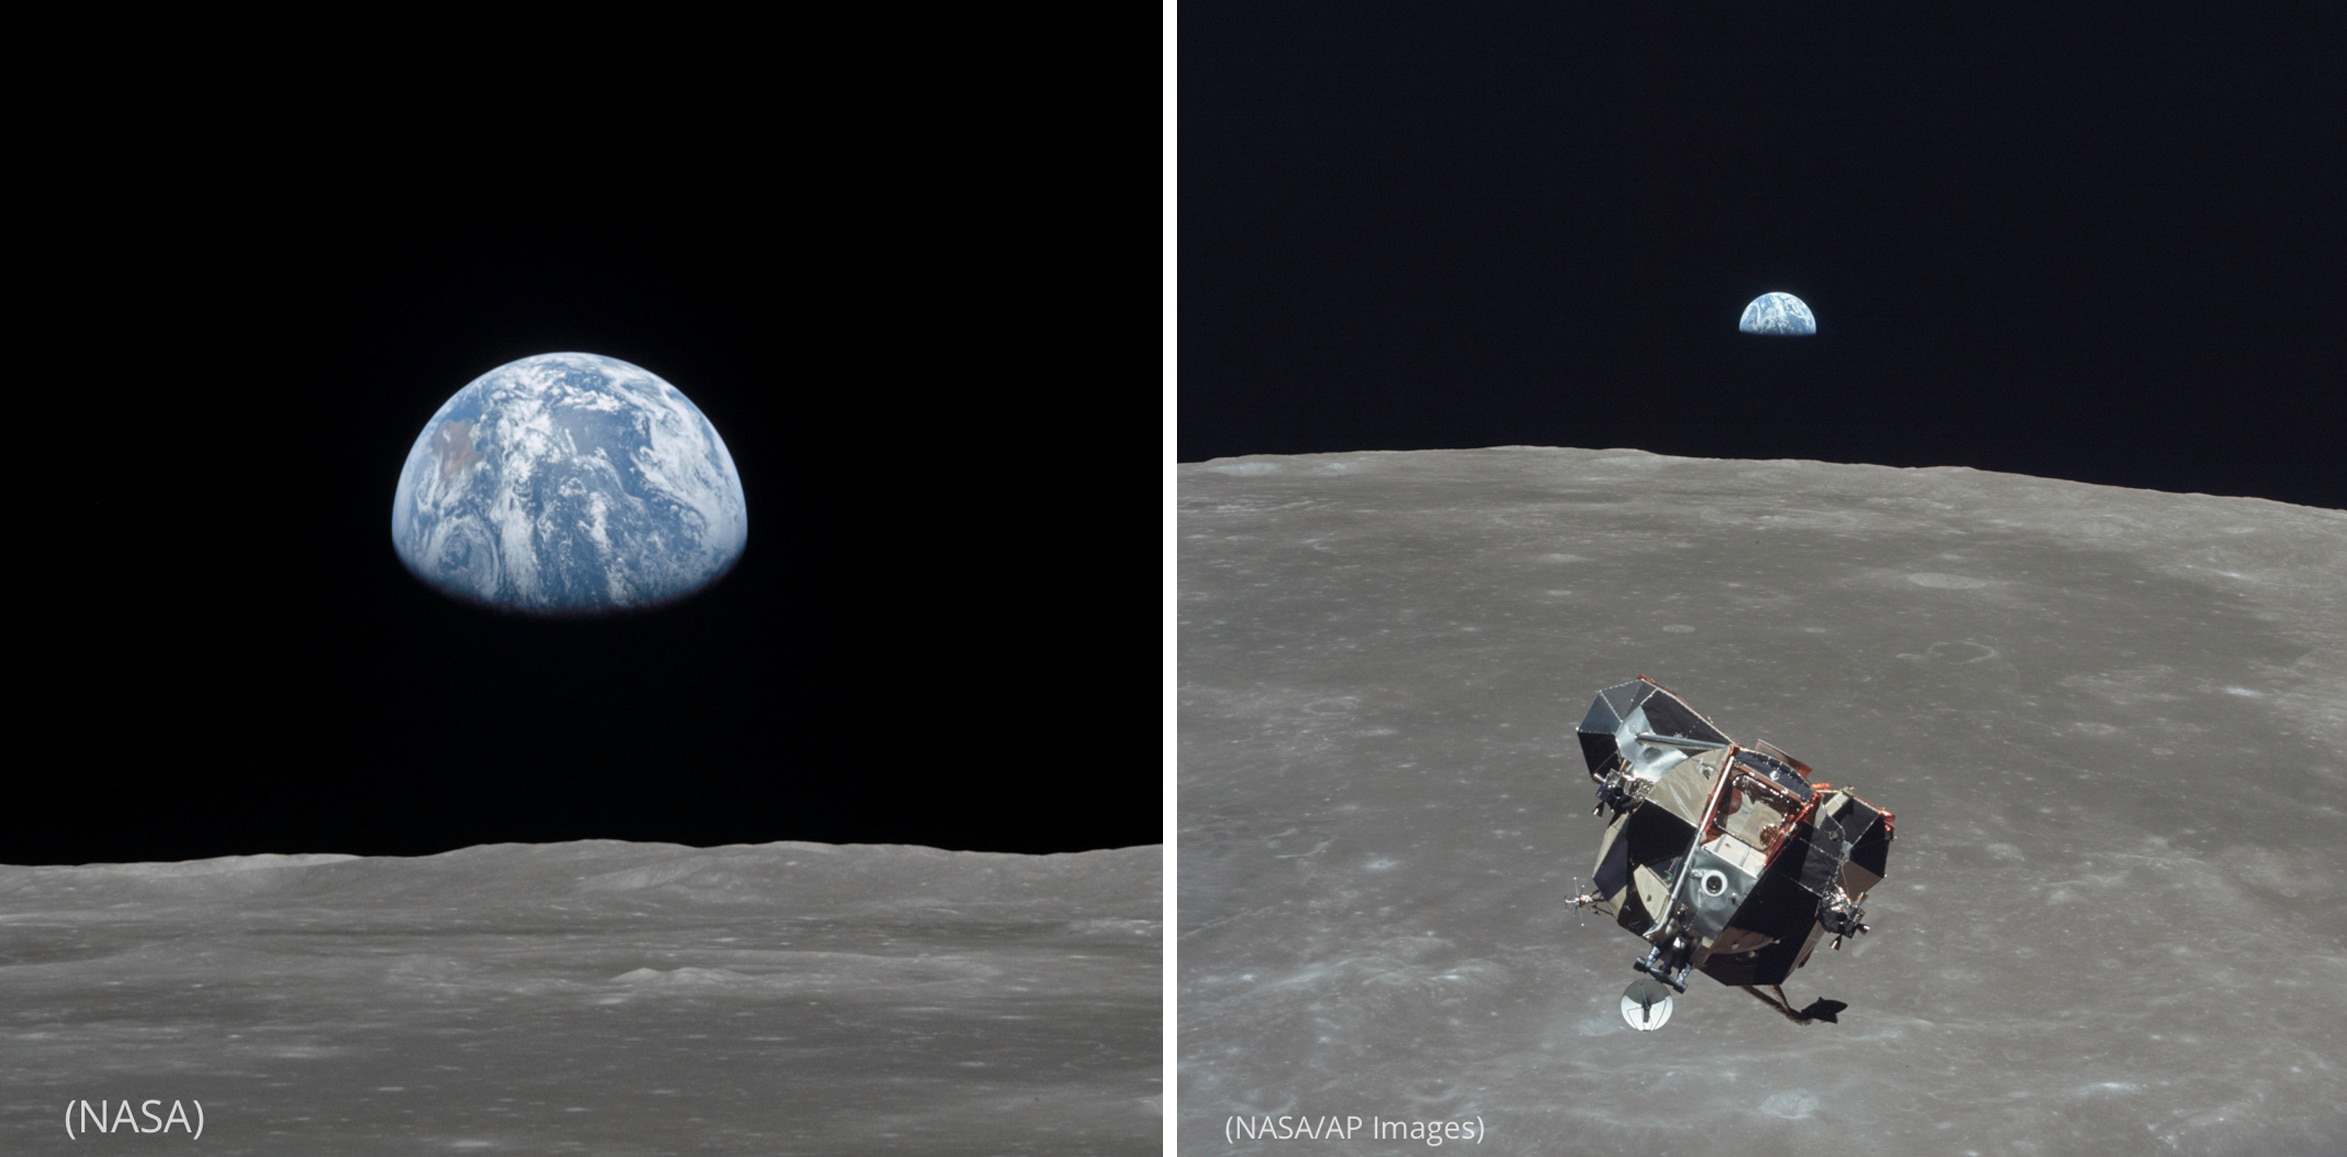 Photo of Earthrise over the lunar horizon (NASA) next to photo of the lunar module in space (NASA/AP Images)